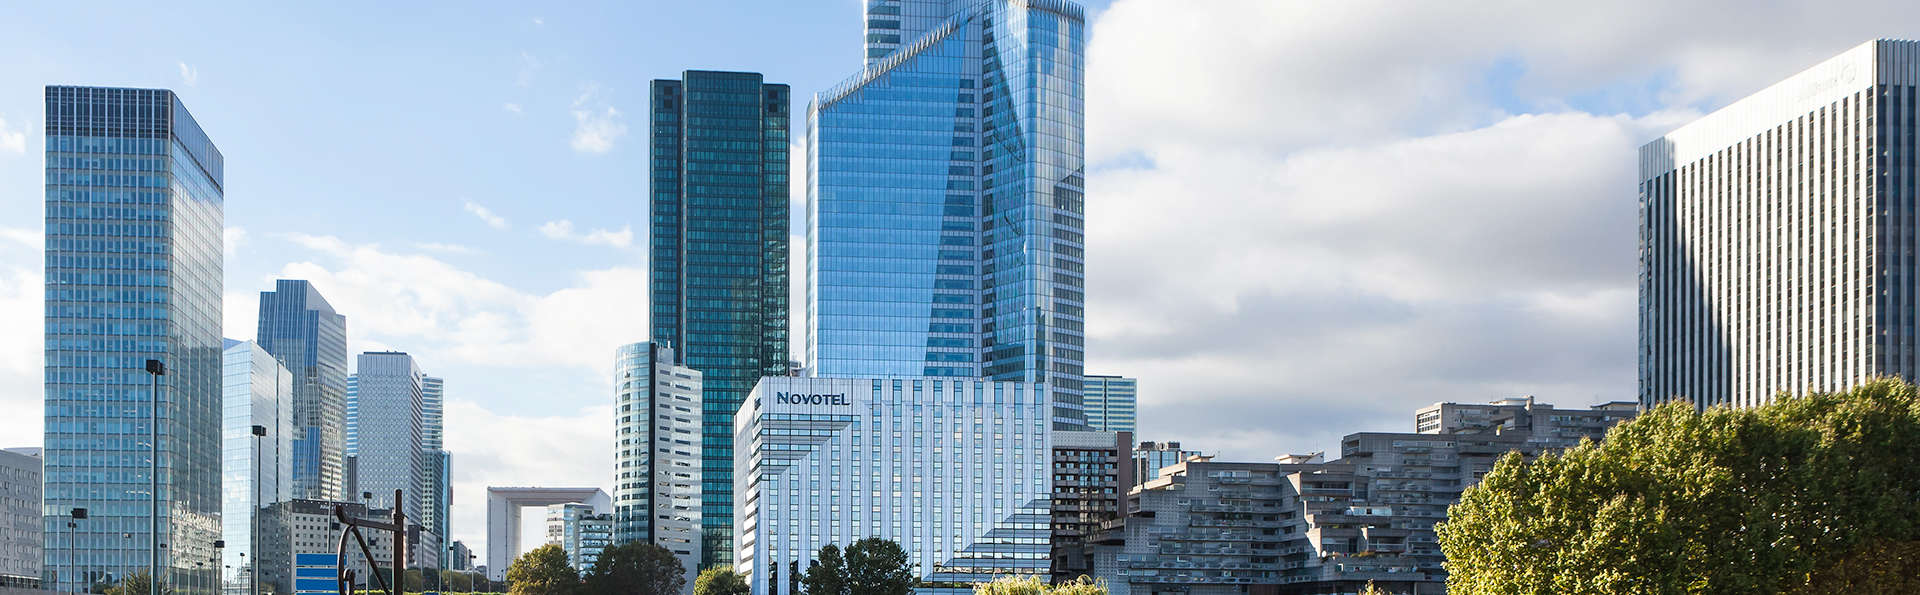 Novotel Paris La Défense - EDIT_front.jpg